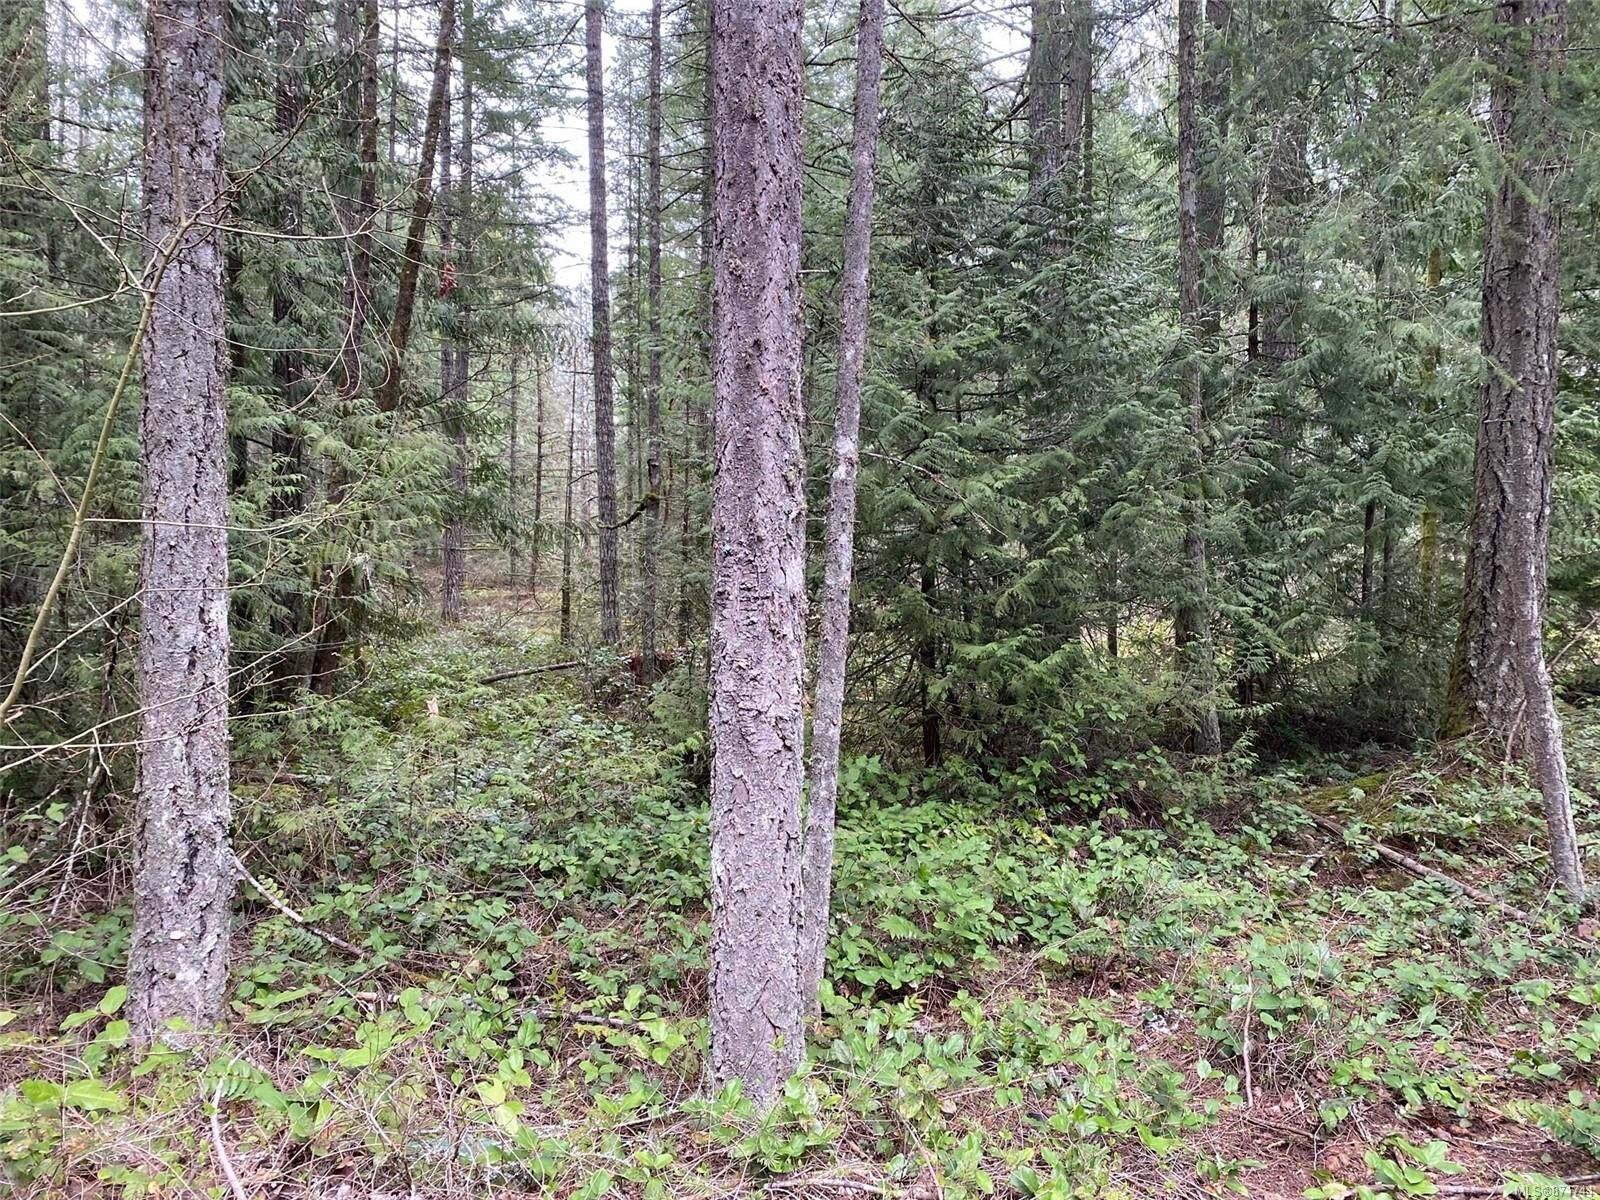 Main Photo: 2330 Extension Rd in : Na Chase River Land for sale (Nanaimo)  : MLS®# 871744